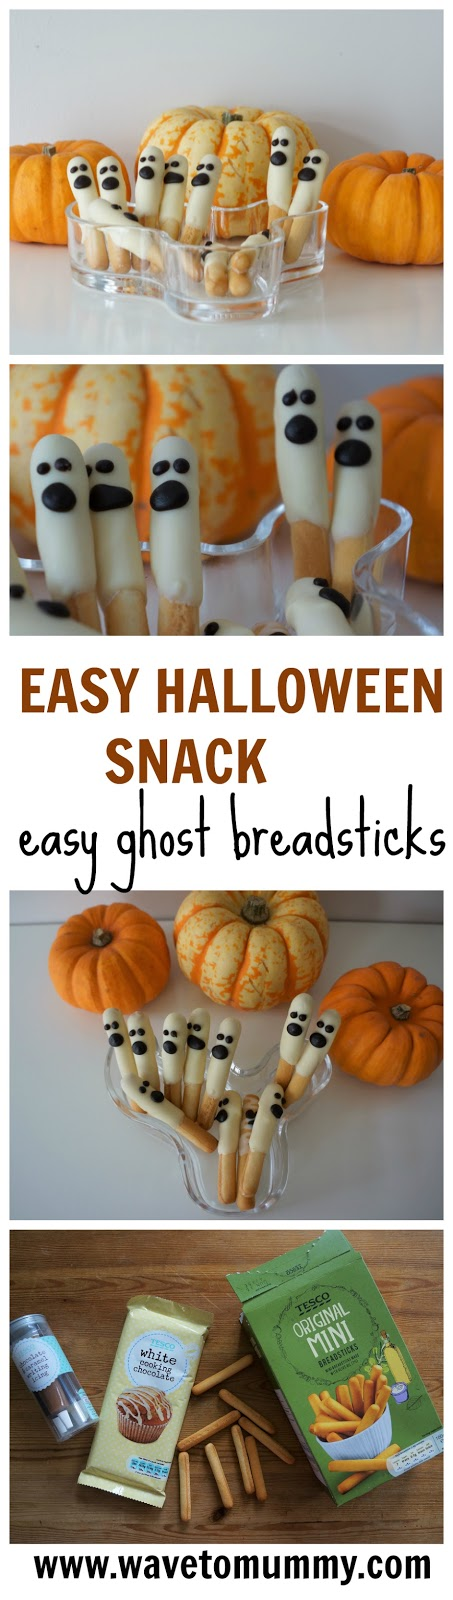 easy halloween ghost breadsticks